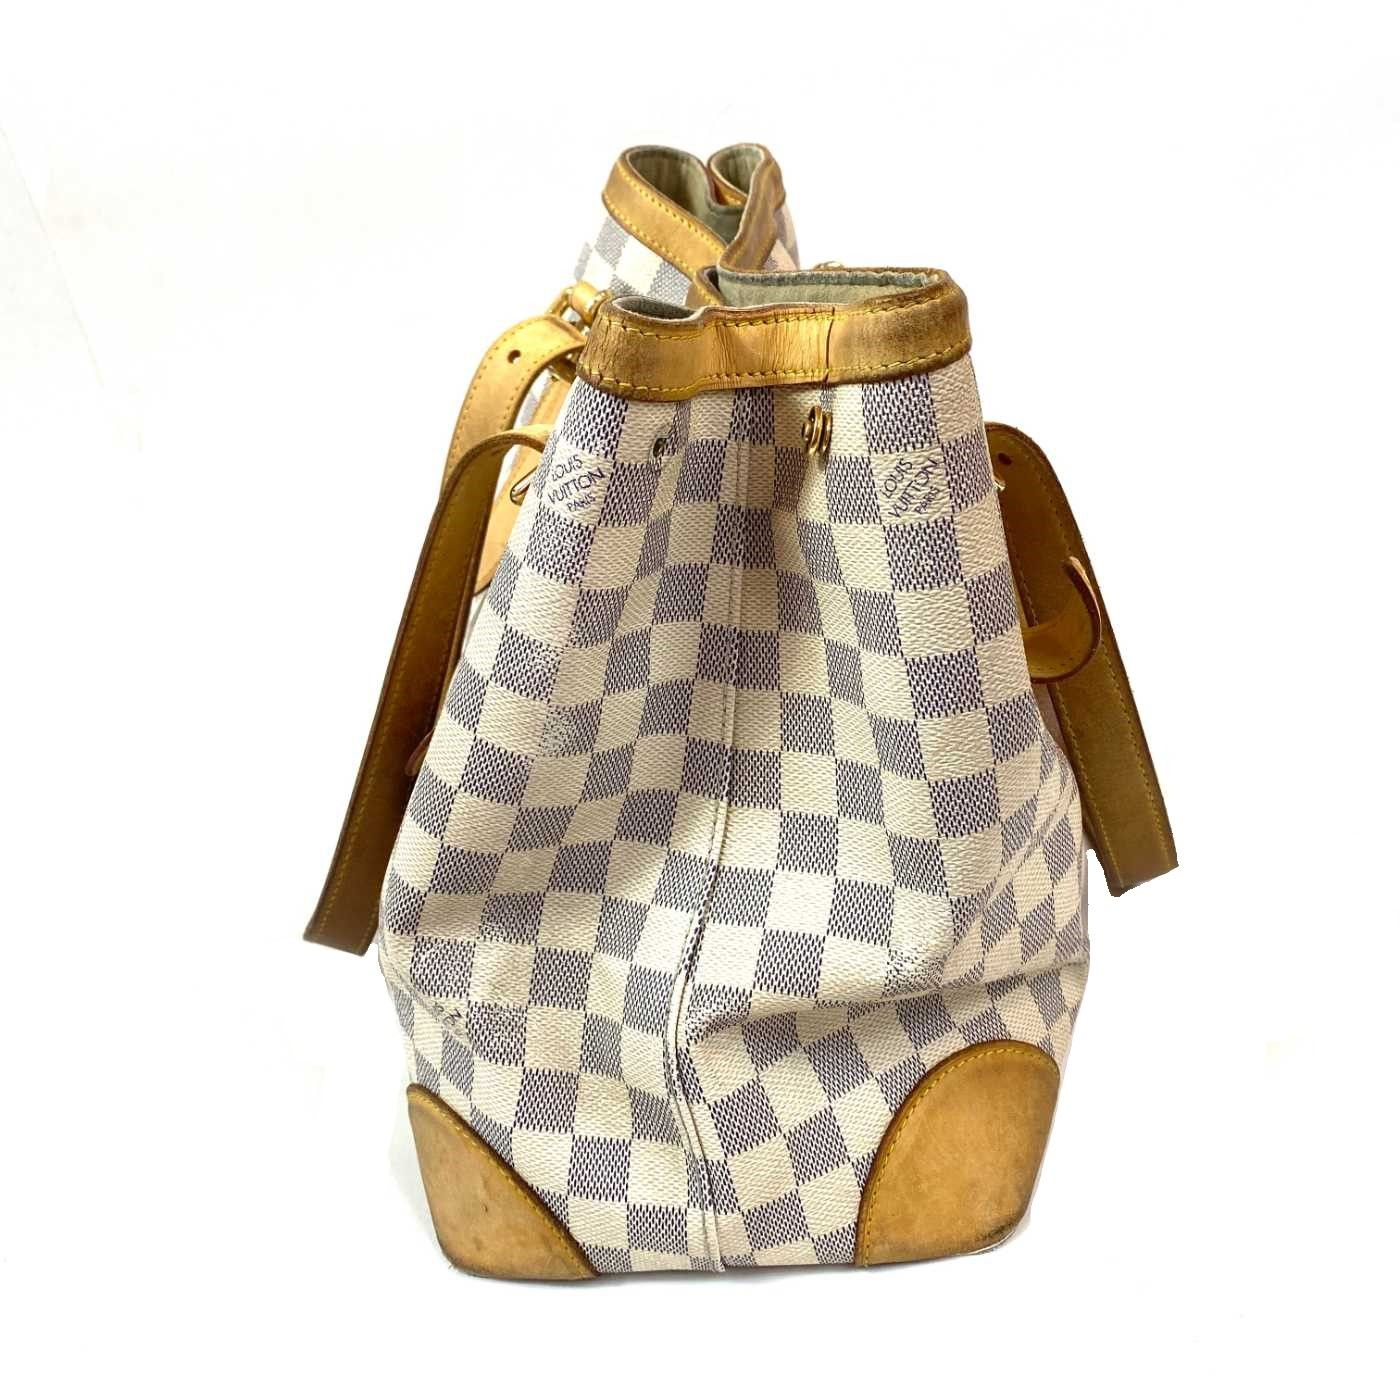 Bolsa Louis Vuitton Hampstead MM Damier Azur